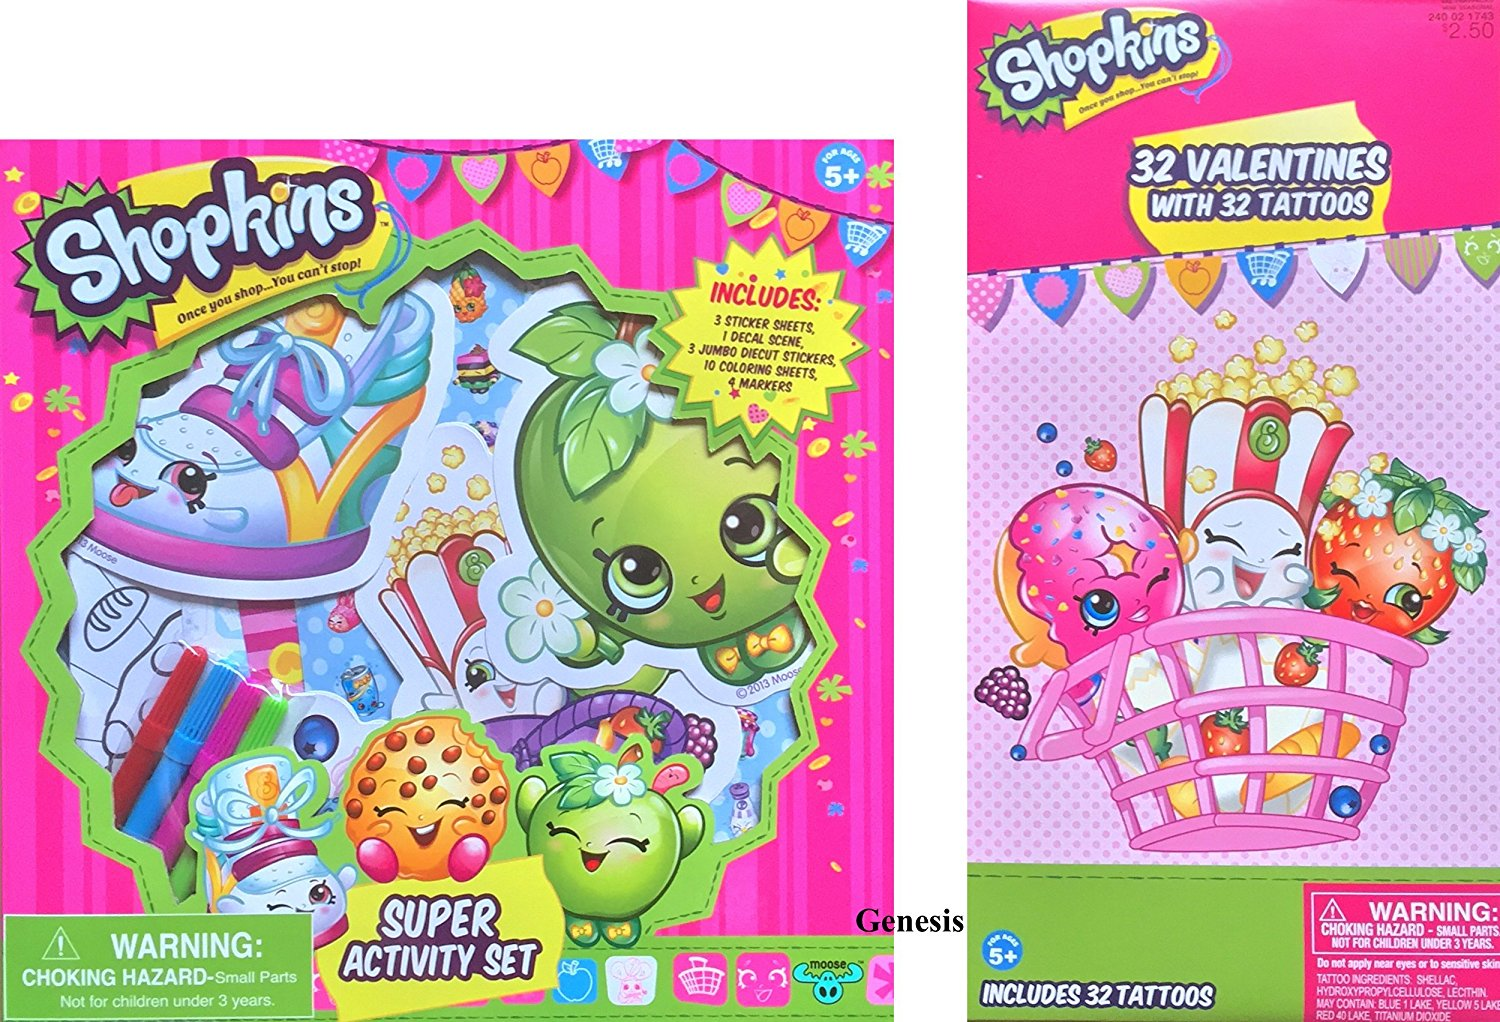 Shopkins Children's Valentines With Shopkins Super Activity Set Includes Sticker Sheets , Decal Scene, Jumbo Diecut Stickers, Coloring Sheets And Markers